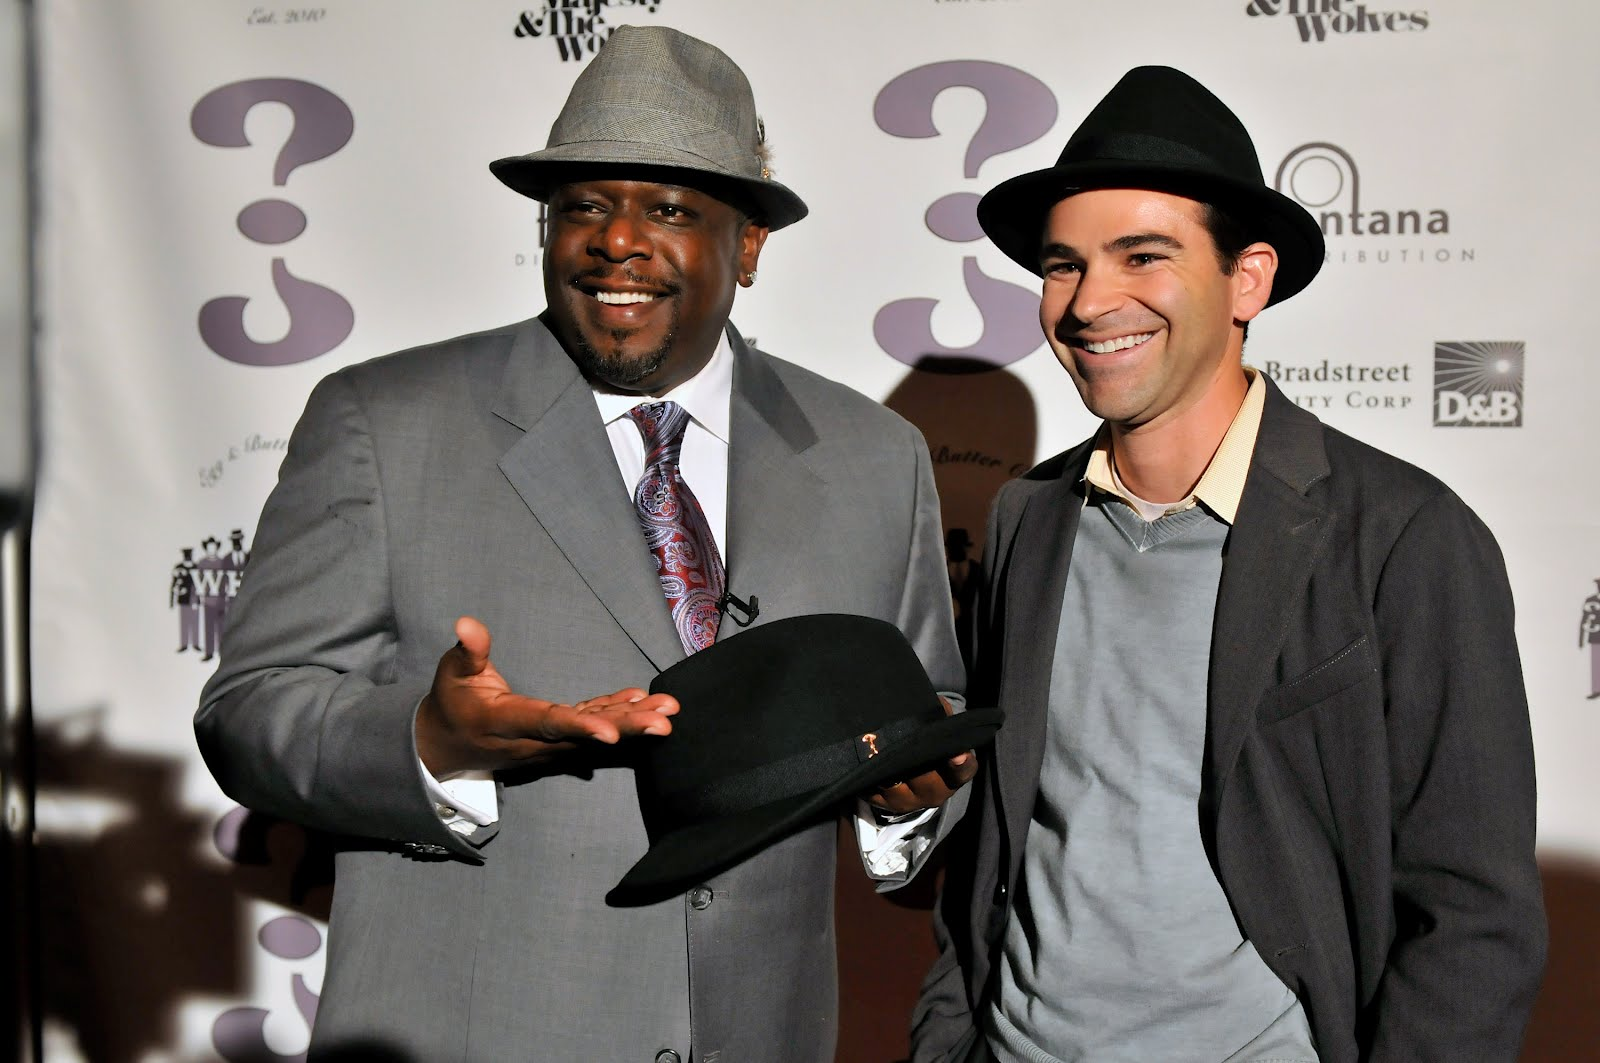 http://3.bp.blogspot.com/-TsdrNlSag3M/TzKb04LrHpI/AAAAAAAABqk/eks-wRCk6iQ/s1600/cedric-the-entertainer-background-2-755108.jpg